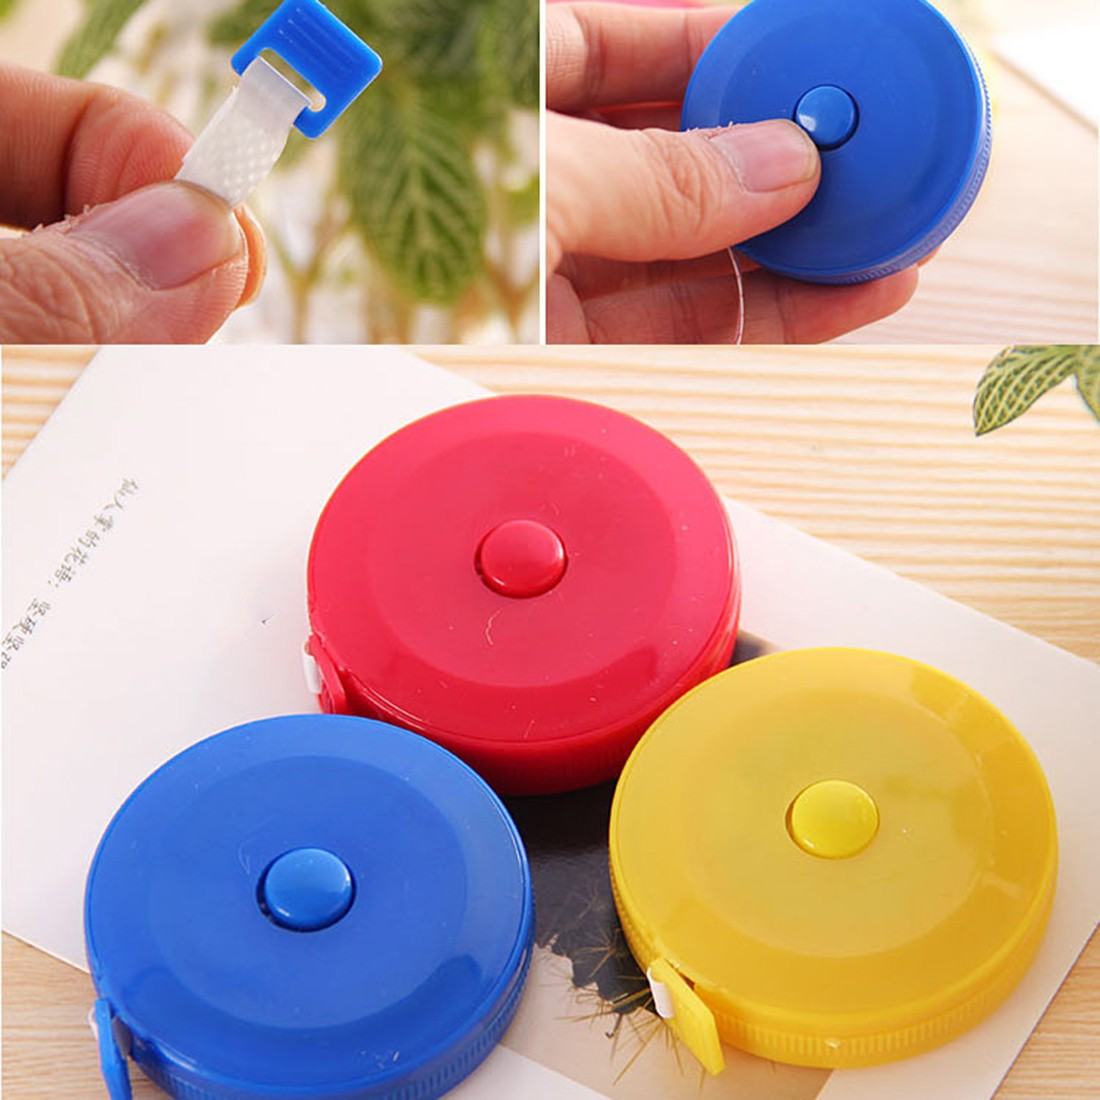 Specially 1 PCS Useful Retractable Ruler Tape Measure Sewing Cloth Dieting Tailor 1.5M Mini Cute Style Random Color